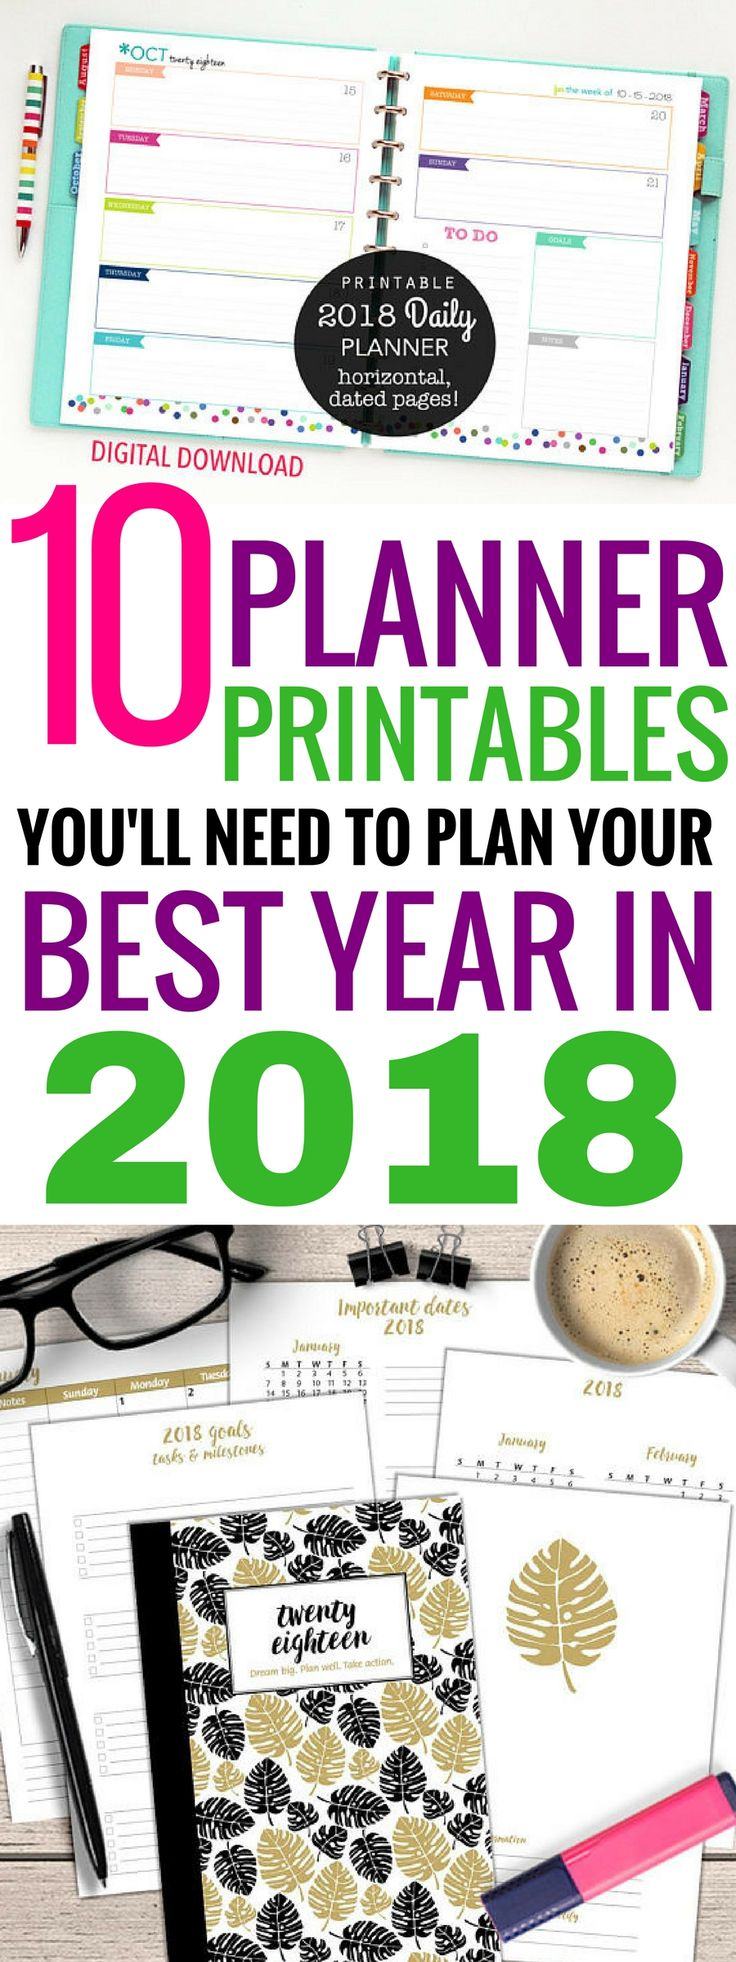 These 10 planner printables are THE BEST! I'm so glad I found these great printables1 Now I can organize my entire life this year! Definitely pinning! #printables #organizing